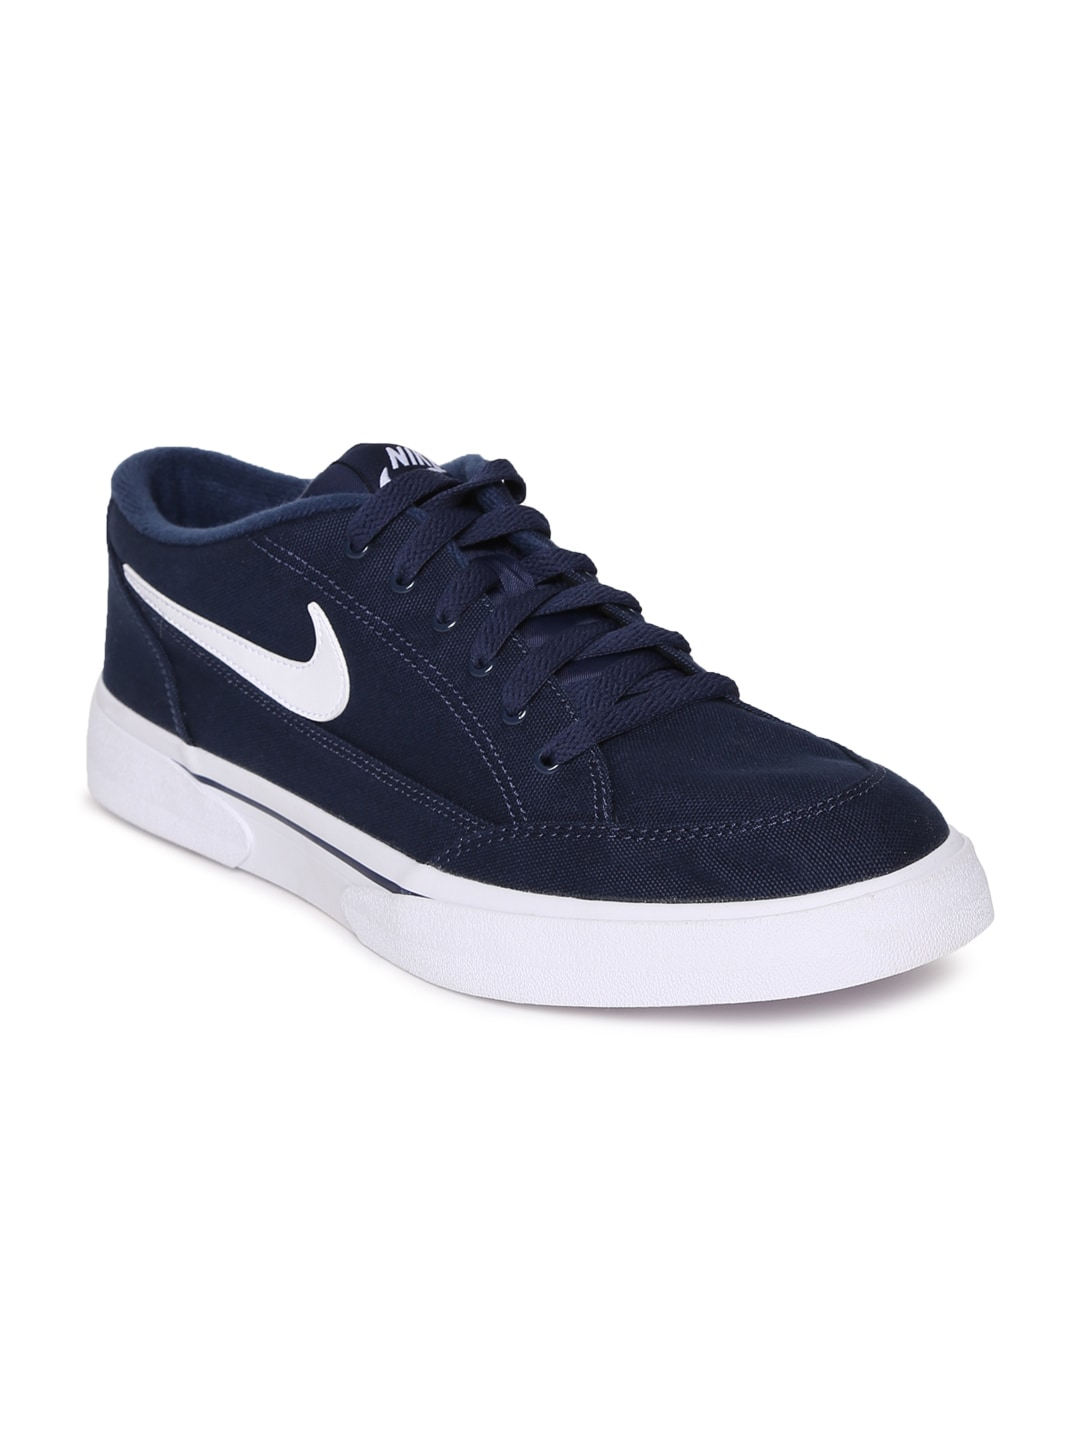 Buy Nike Men Blue Court Borough Low Leather Sneakers - Casual Shoes ... 4eb47c060